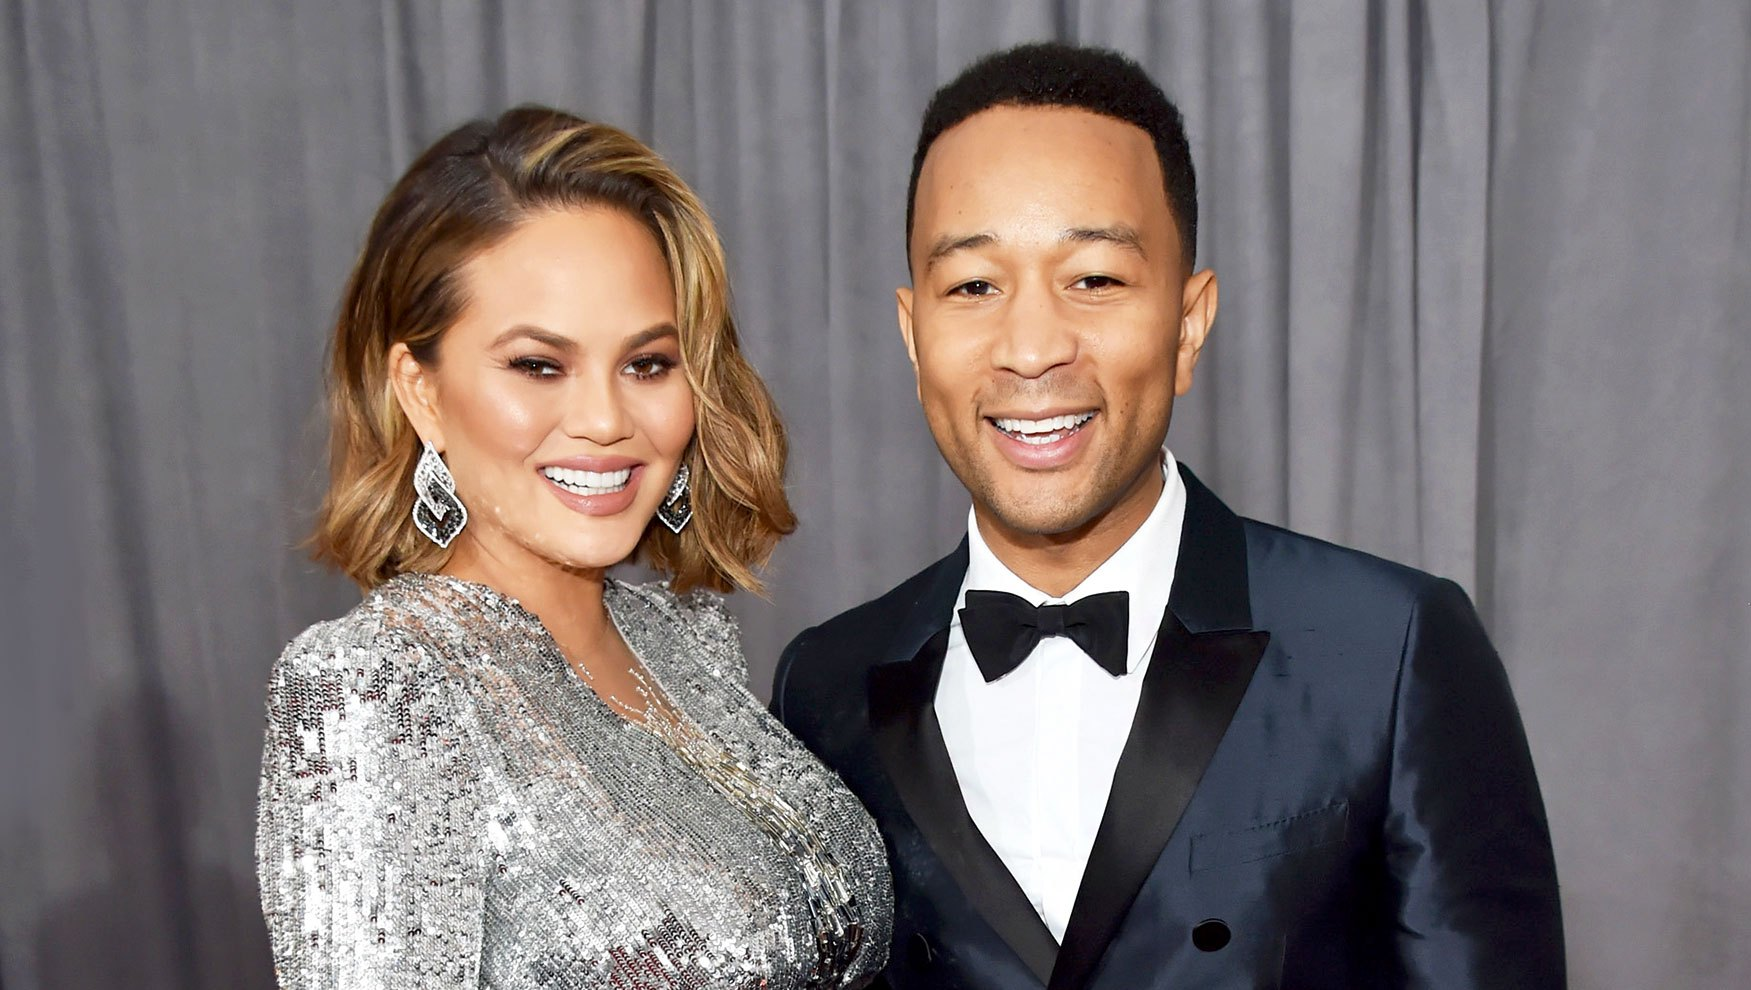 Chrissy Teigen and John Legend attend the 60th Annual Grammy Awards at Madison Square Garden in New York City.